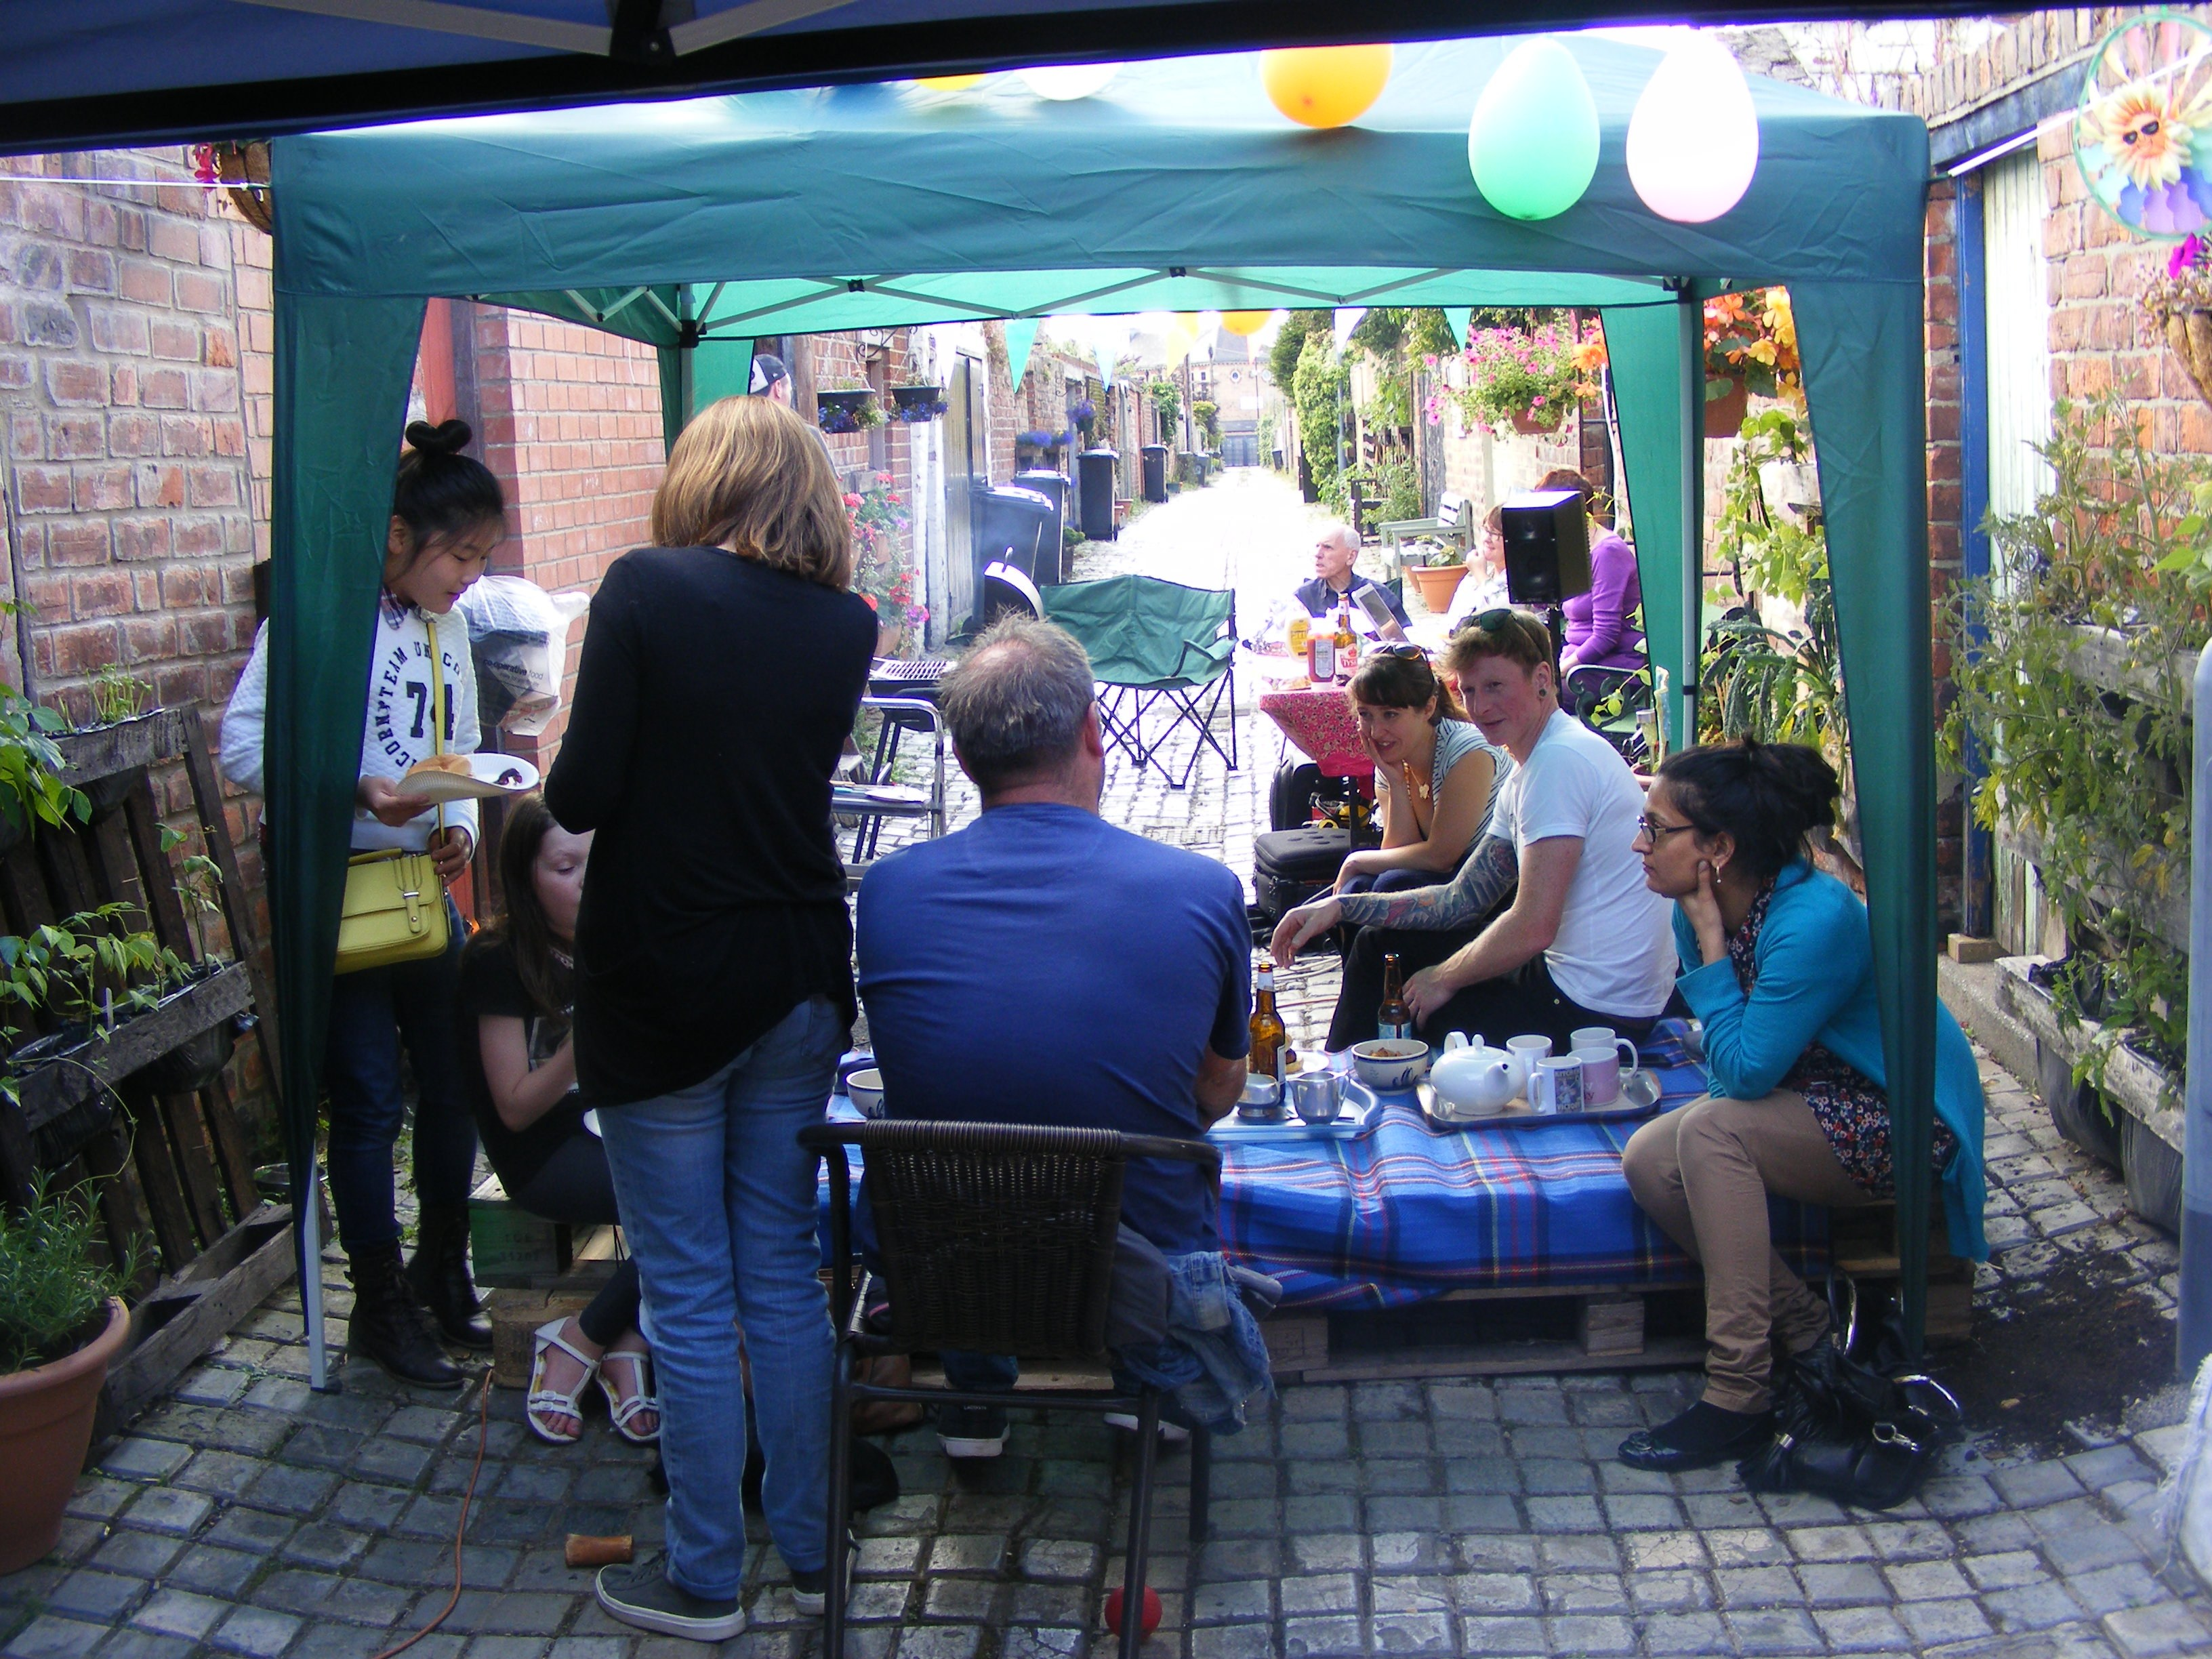 Members of Middlesbrough Environment City Alley Pals hosting an event in an alley behind terraced houses